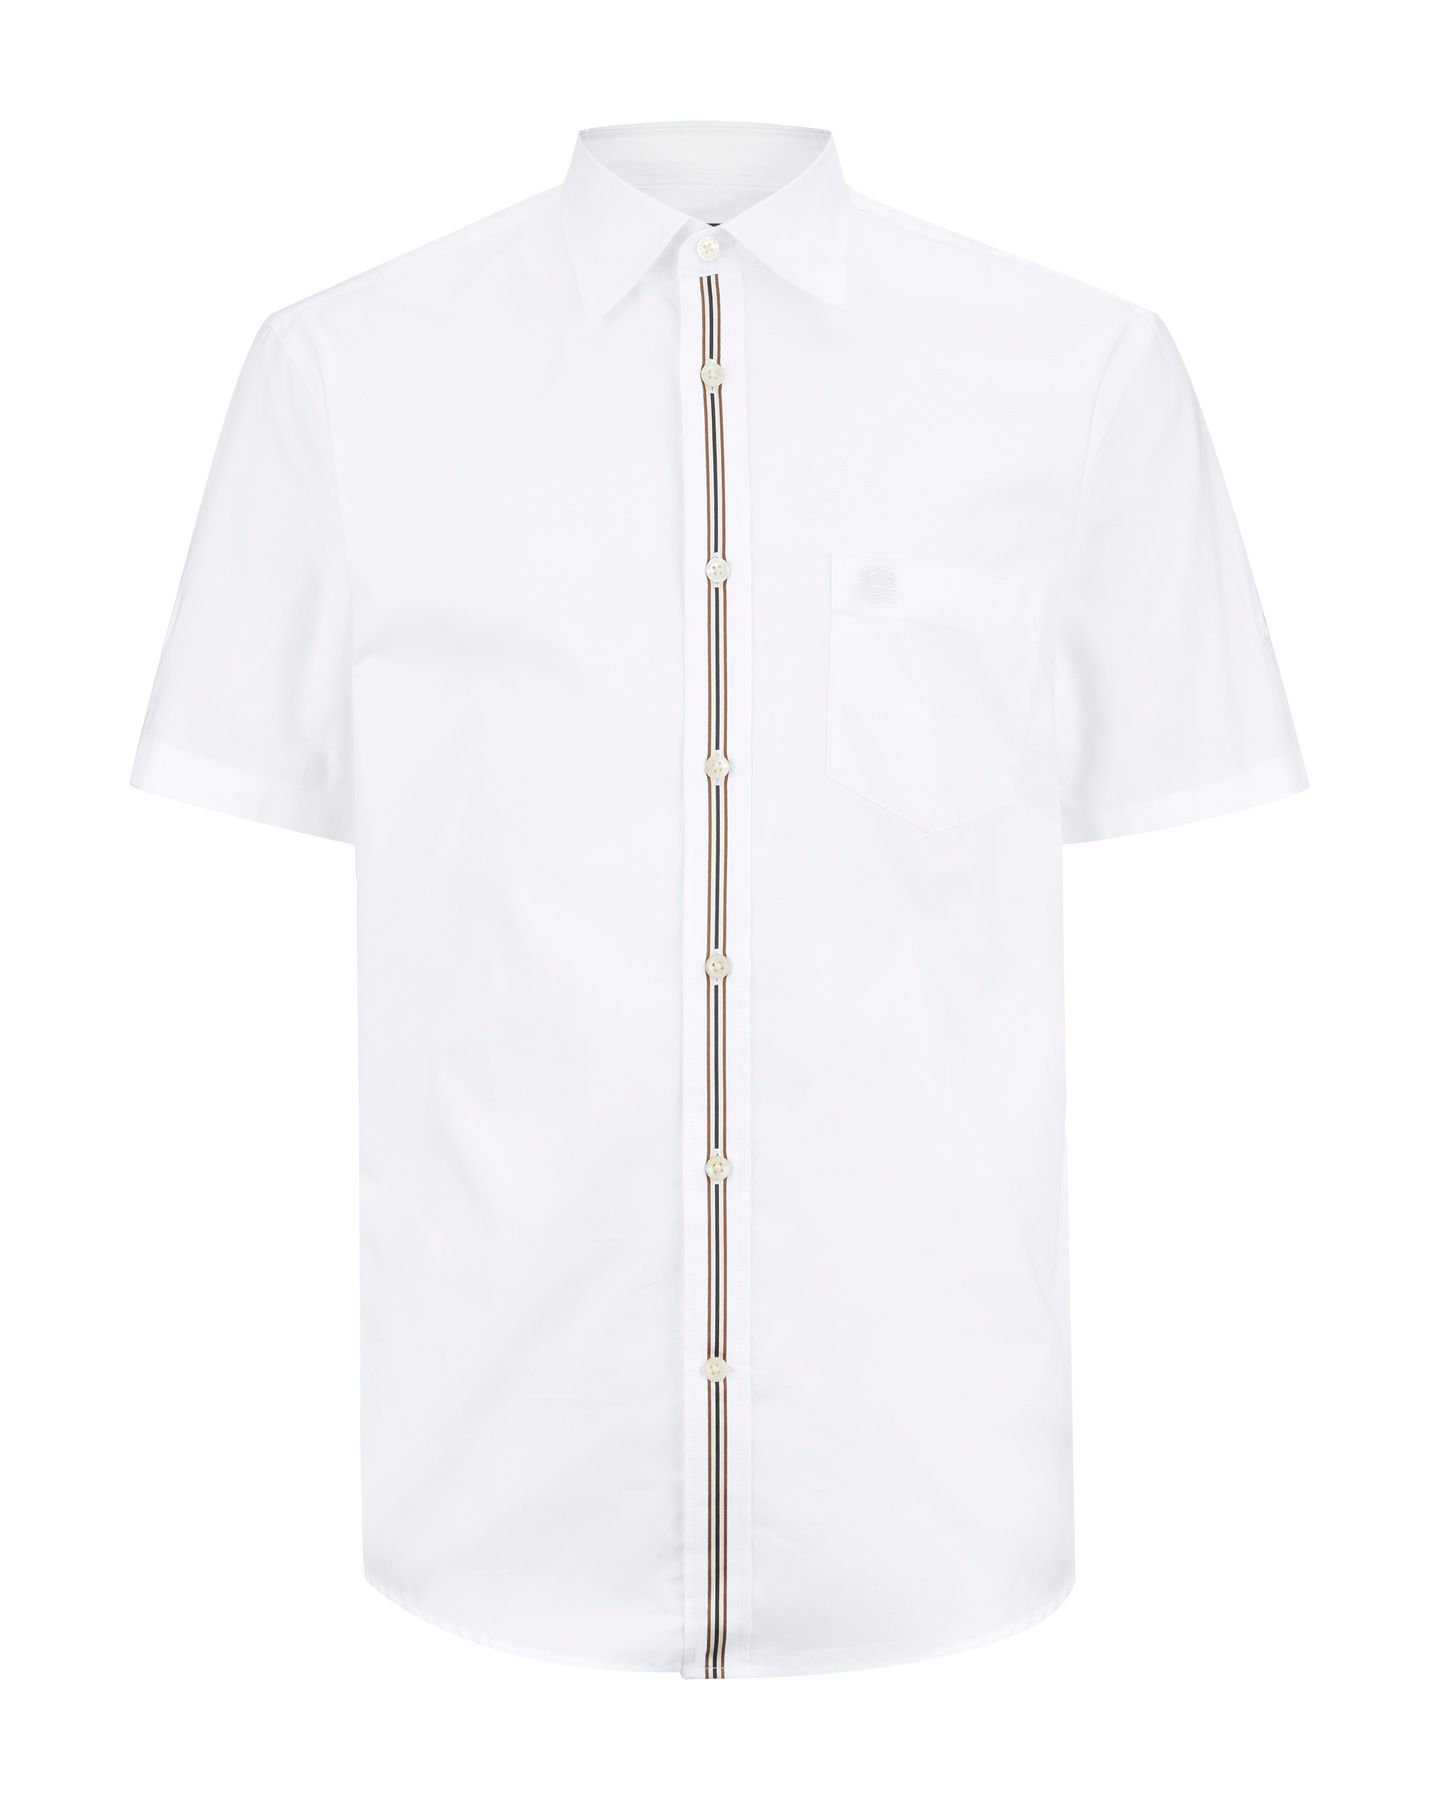 Club check short sleeved tape trim shirt